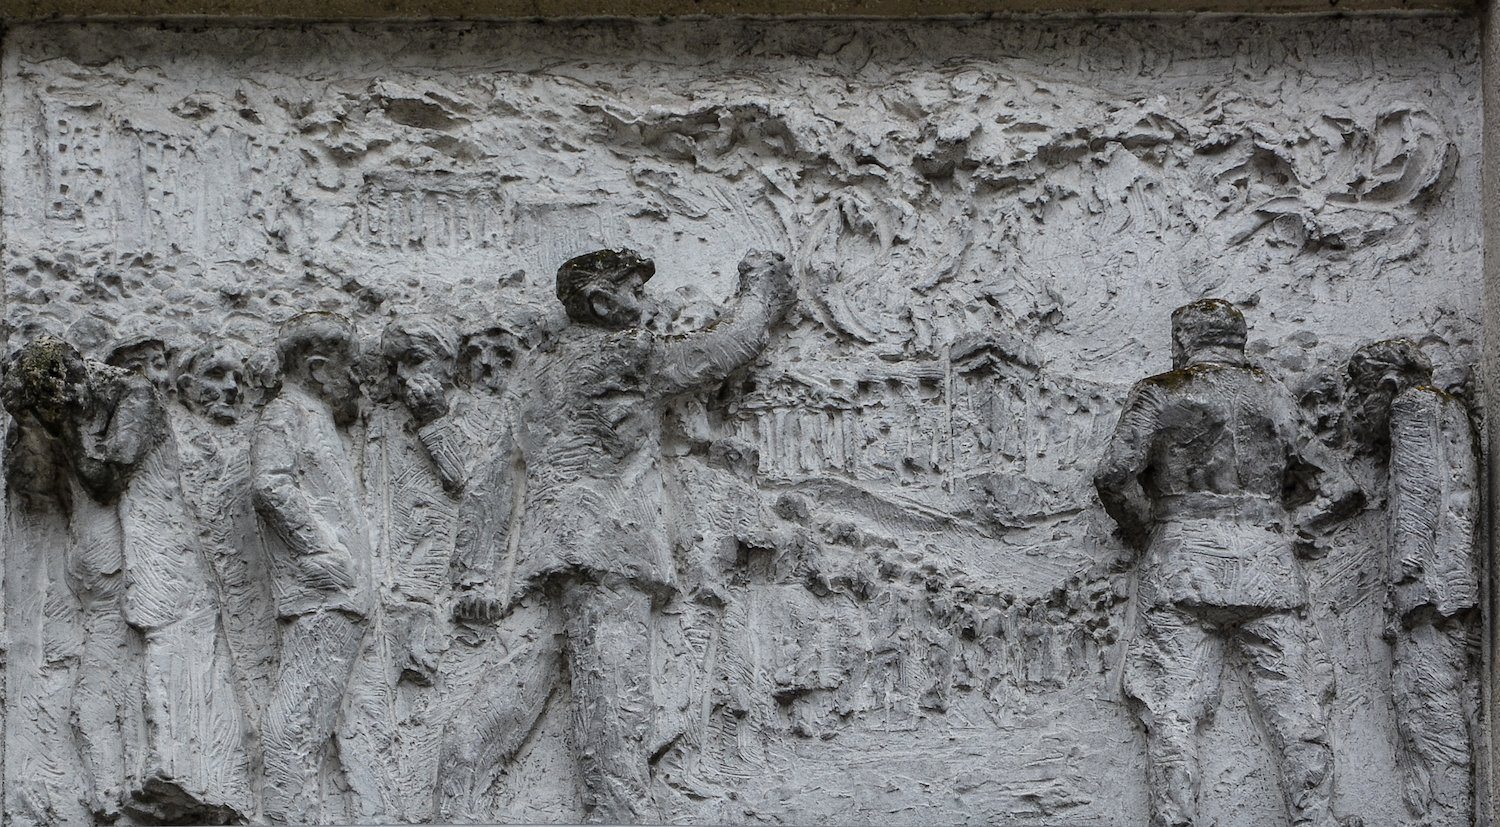 reichstagsbrand fries der sozialistischen Geschichte Berlins Gerhard Thieme socialist history of berlin relief frieze berlin germany socialsim communism east berlin east germany ddr